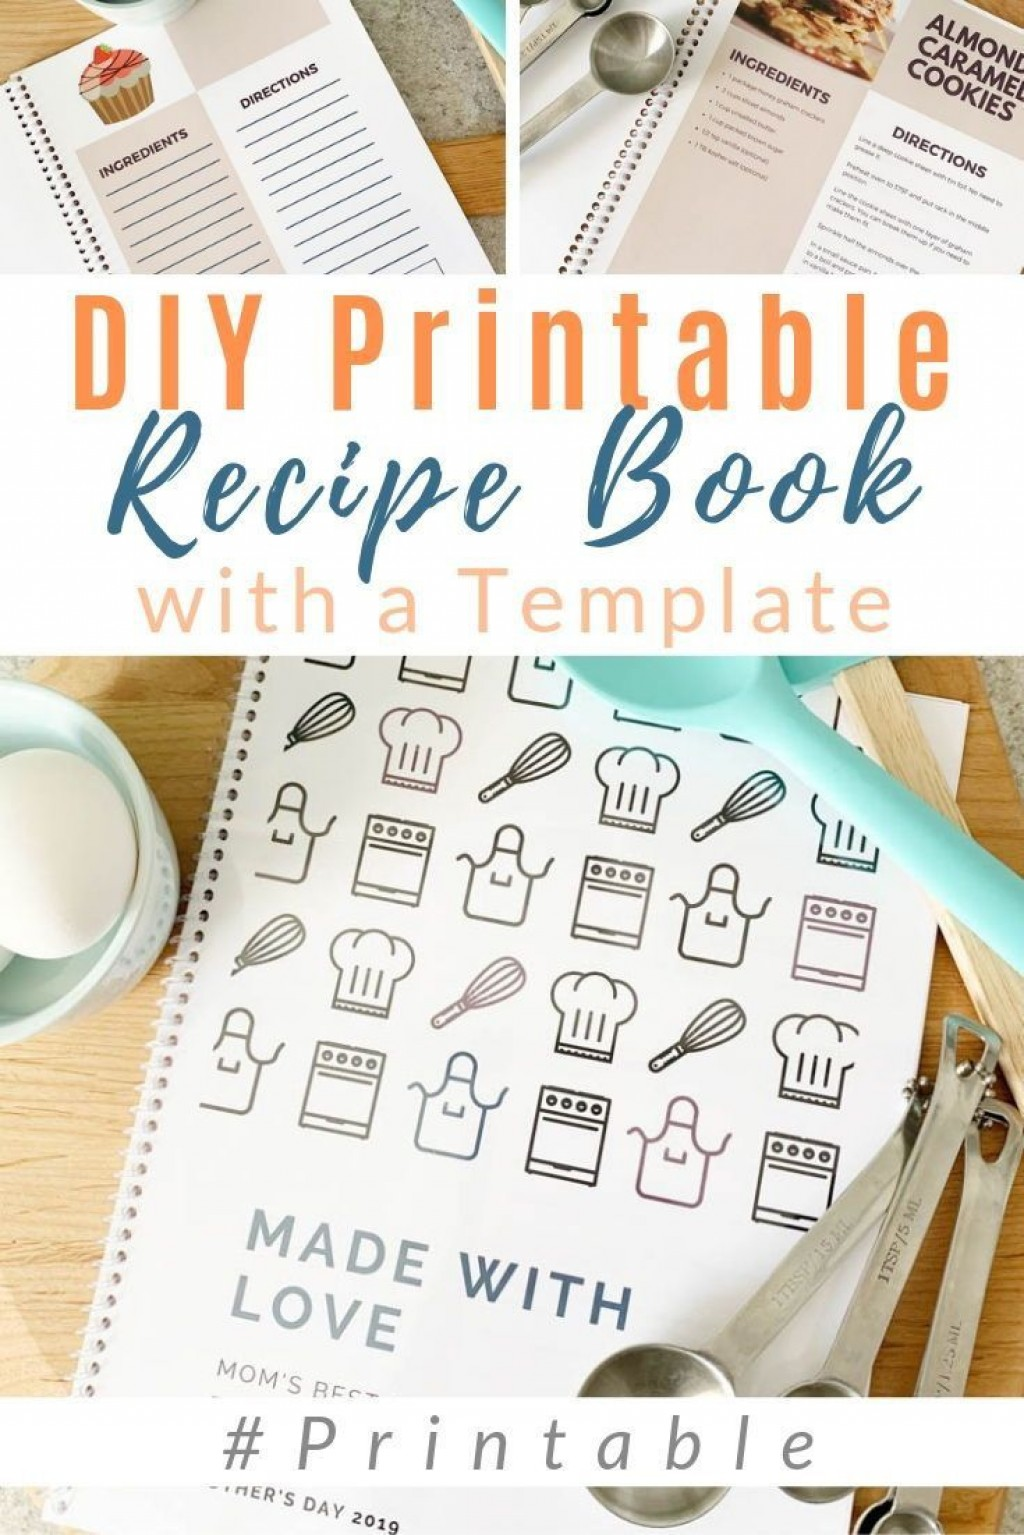 001 Marvelou Create Your Own Cookbook Free Template Inspiration Large